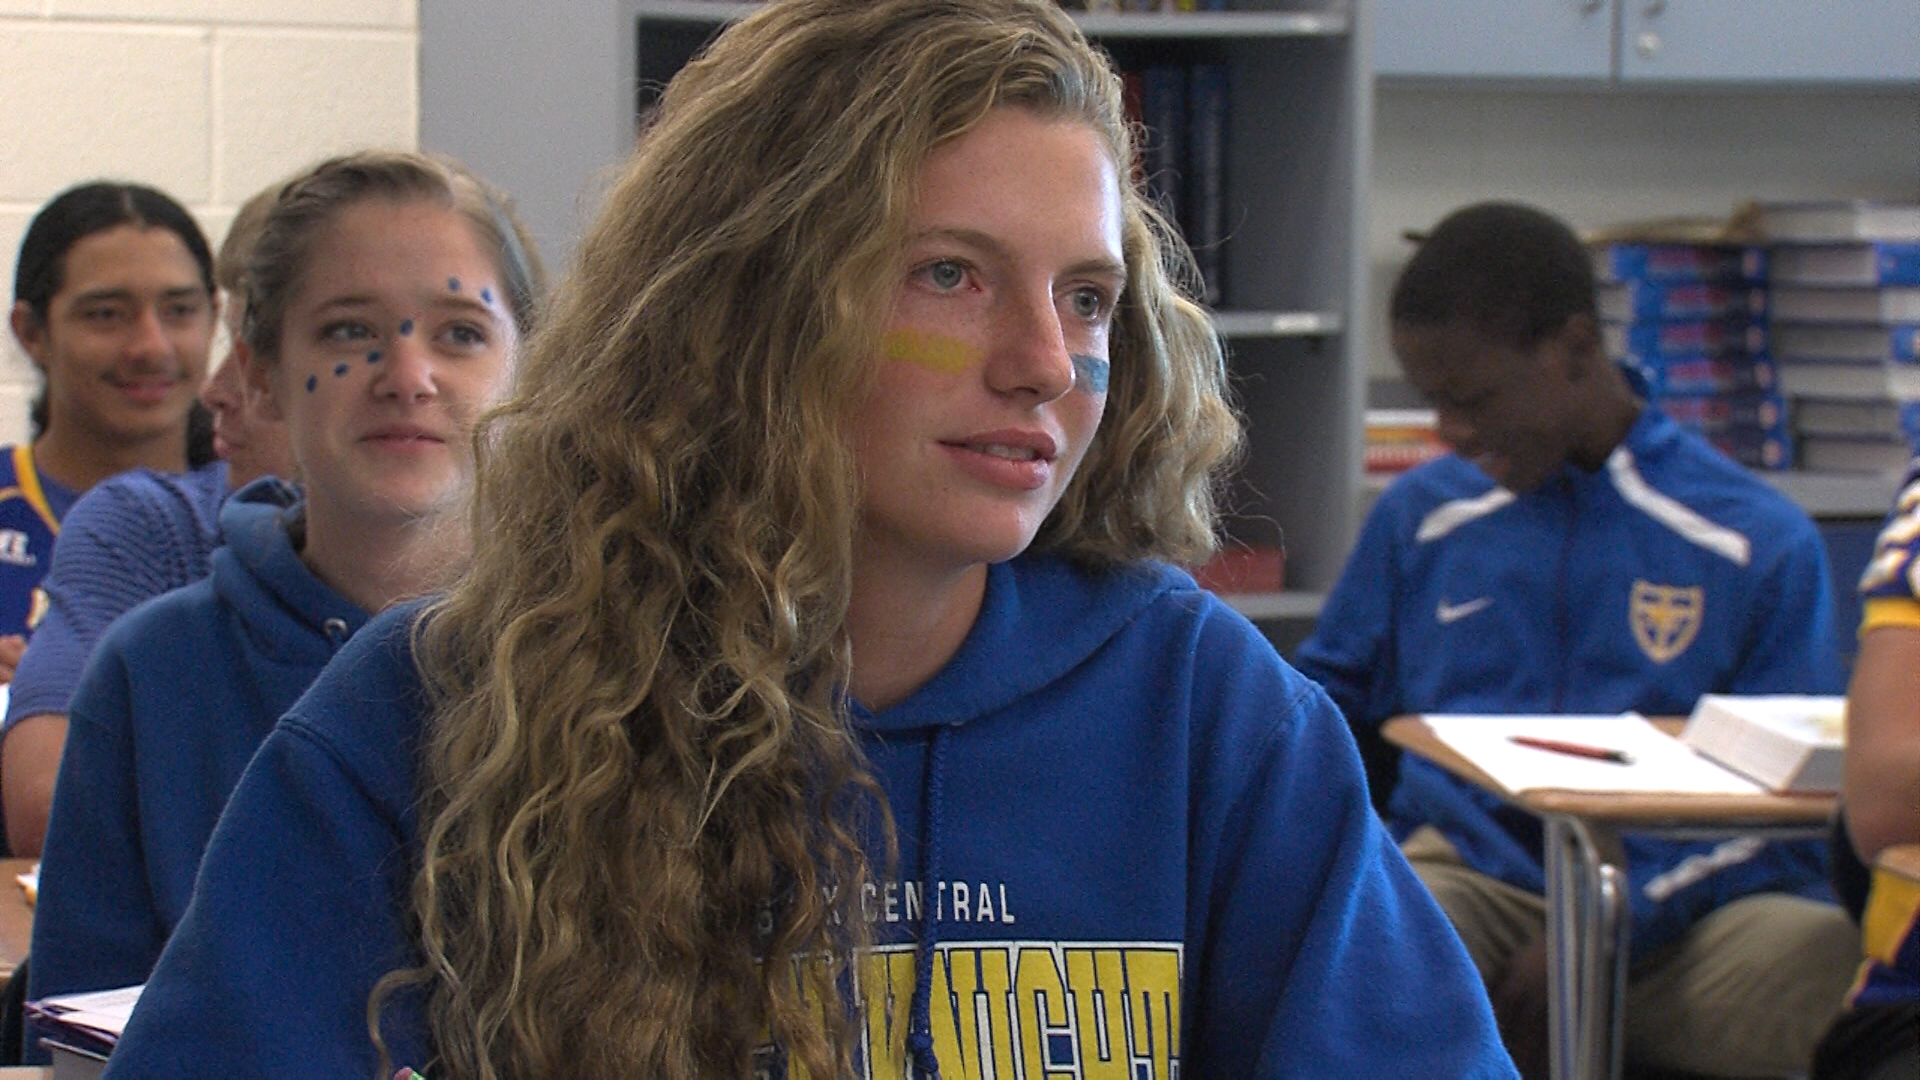 WBOC/Mountaire Farms October Scholar Athlete of the Month – Mikayla Ockels, Sussex Central